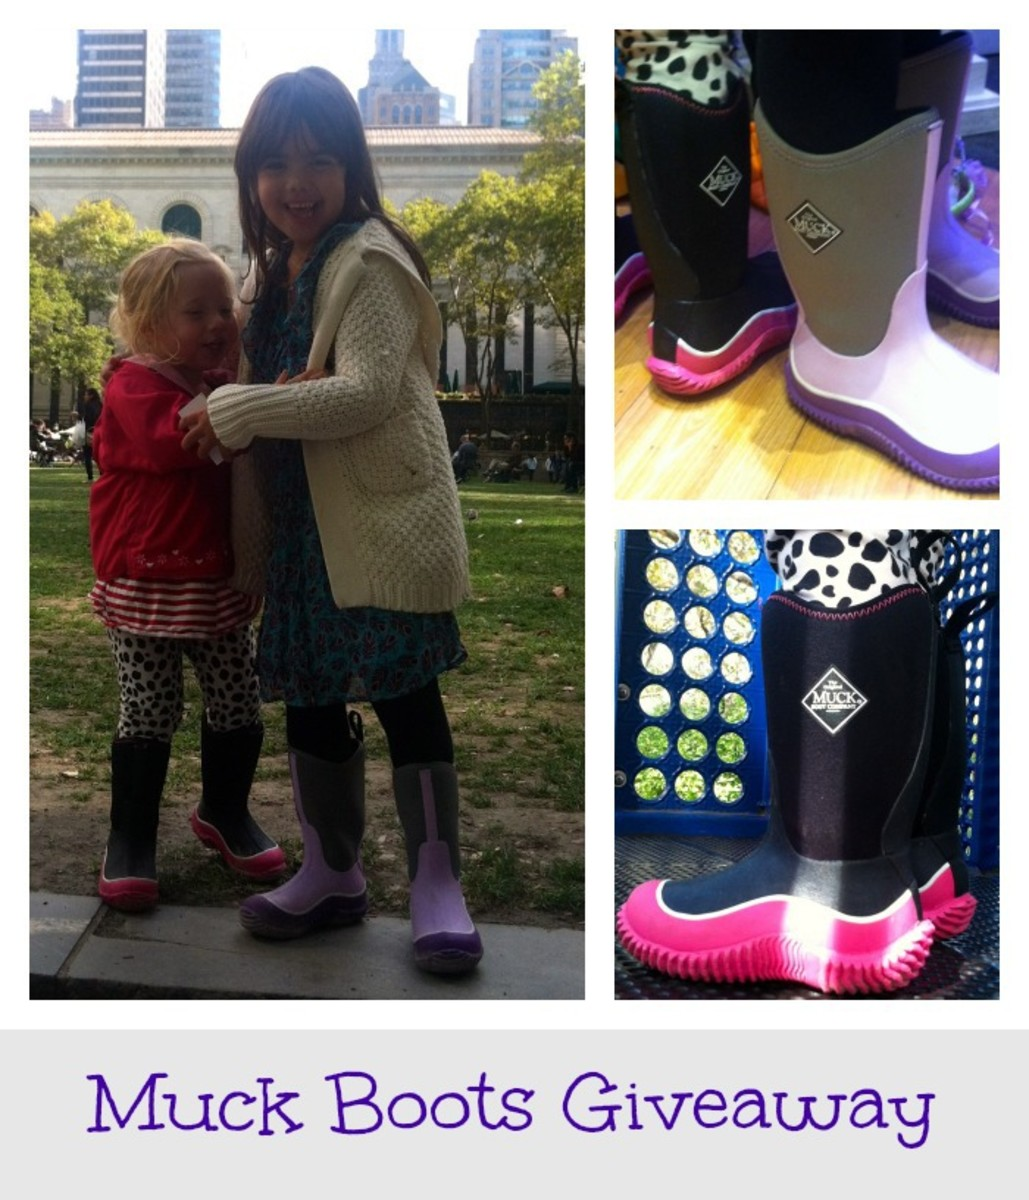 Muck Boots Giveaway, Muck Boots